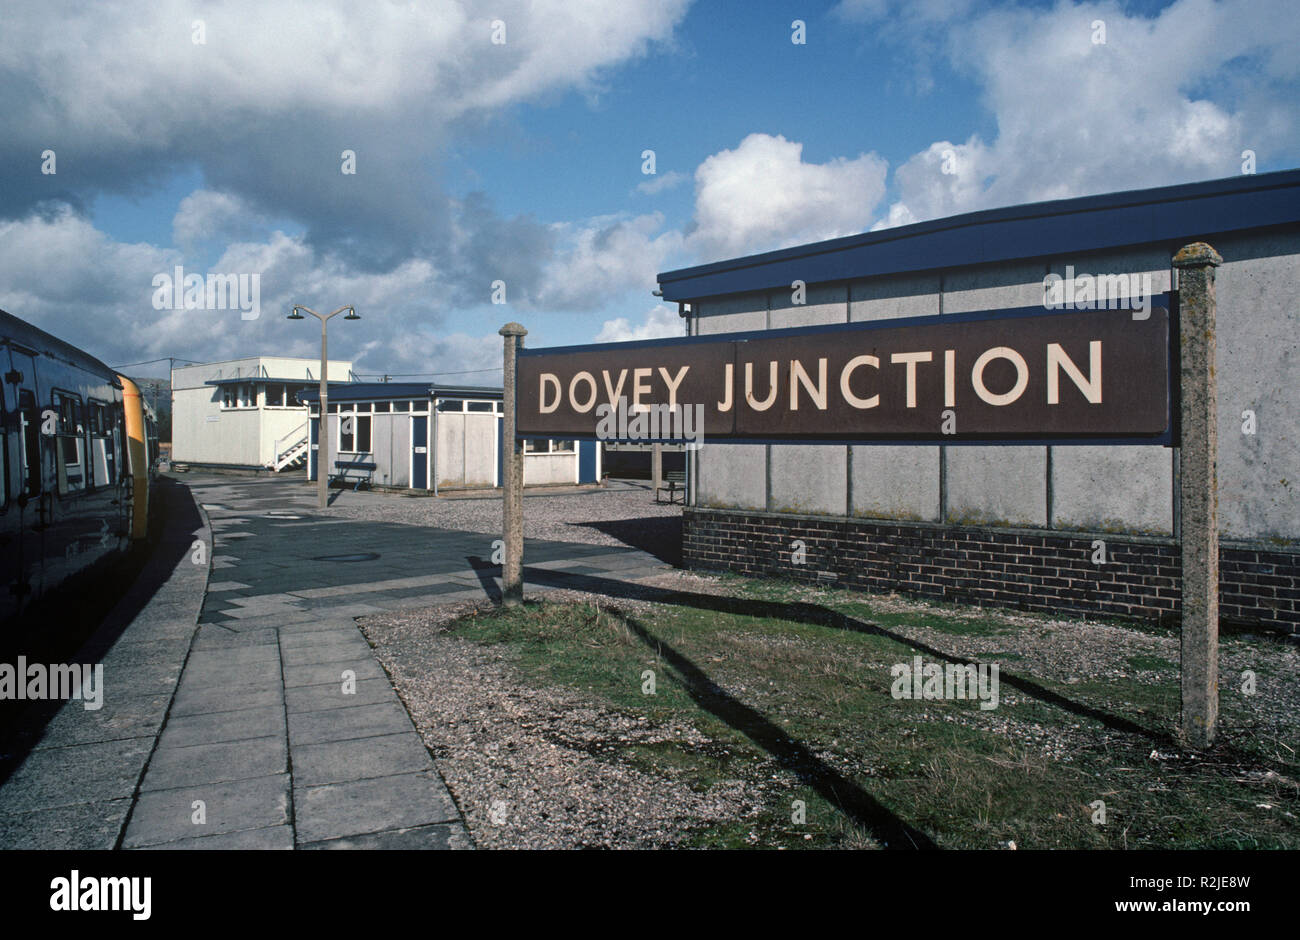 British Rail Diesel Multiple Unit, DMU, train at Dovey Junction, on the Cambrian Coast Dovey Junction to Pwllheli railway line, Wales, Great Britain - Stock Image